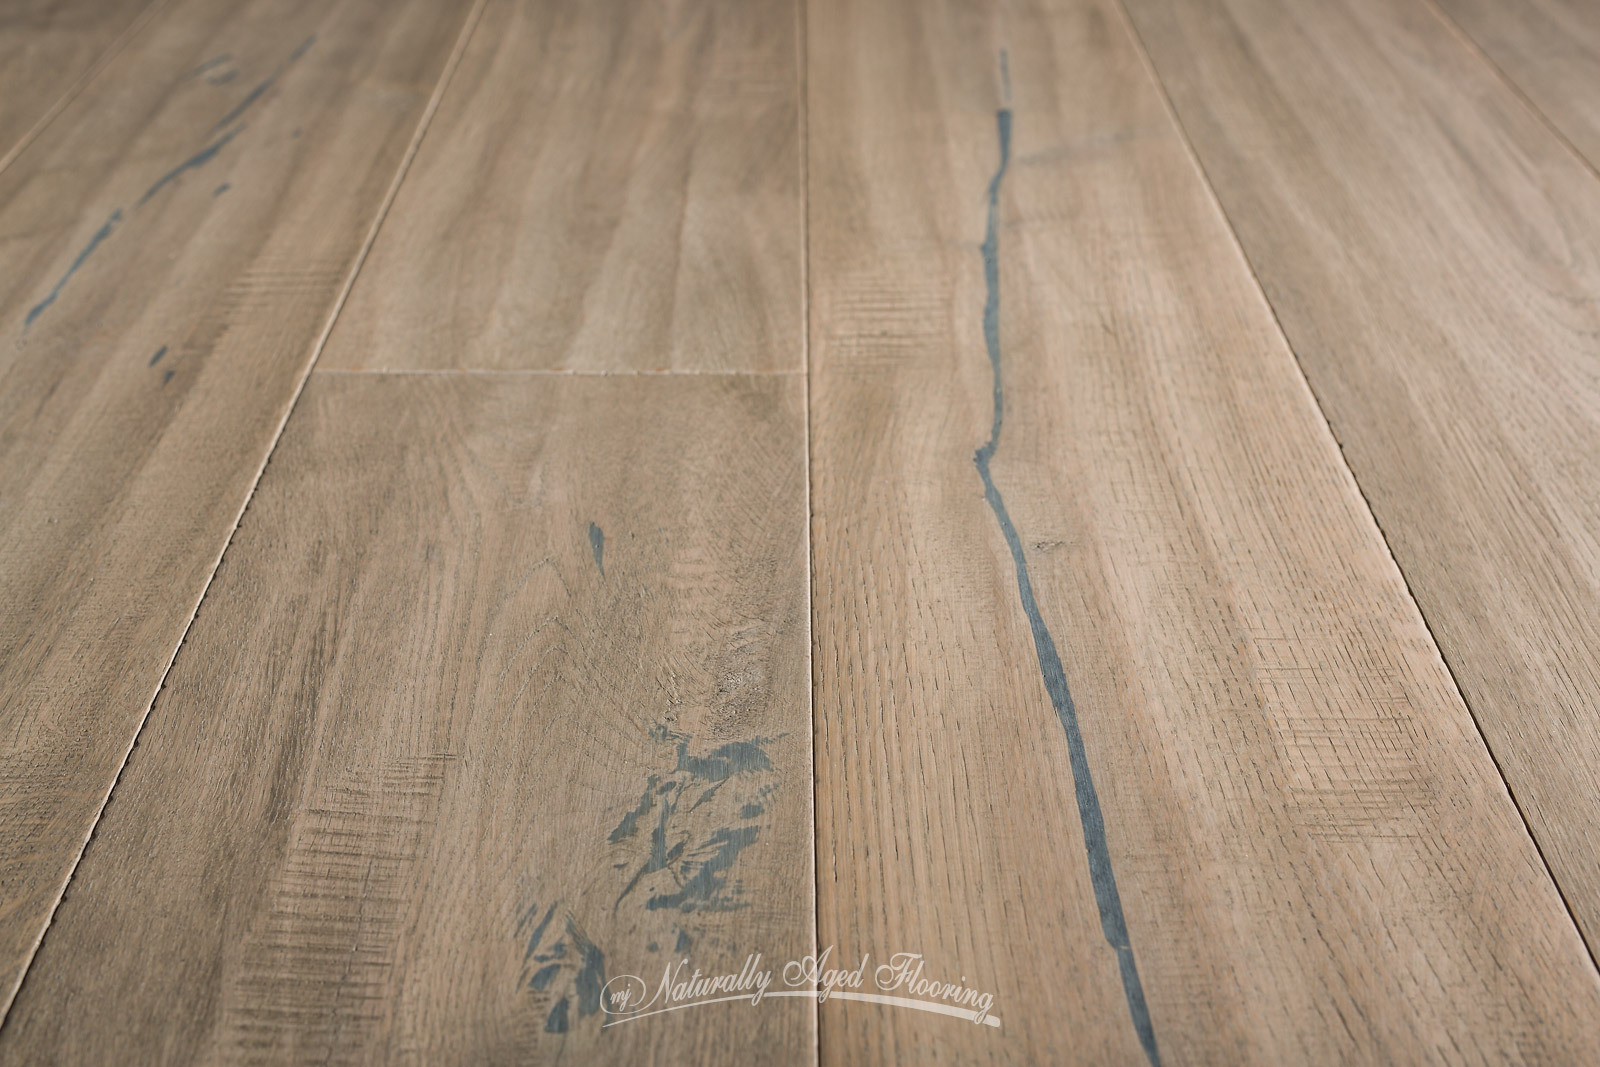 Unique colors and textures help customize spaces, individualizing tastes and styles specific to you. This Naturally Aged Hardwood has high contrast veining with light hand scraped texture.